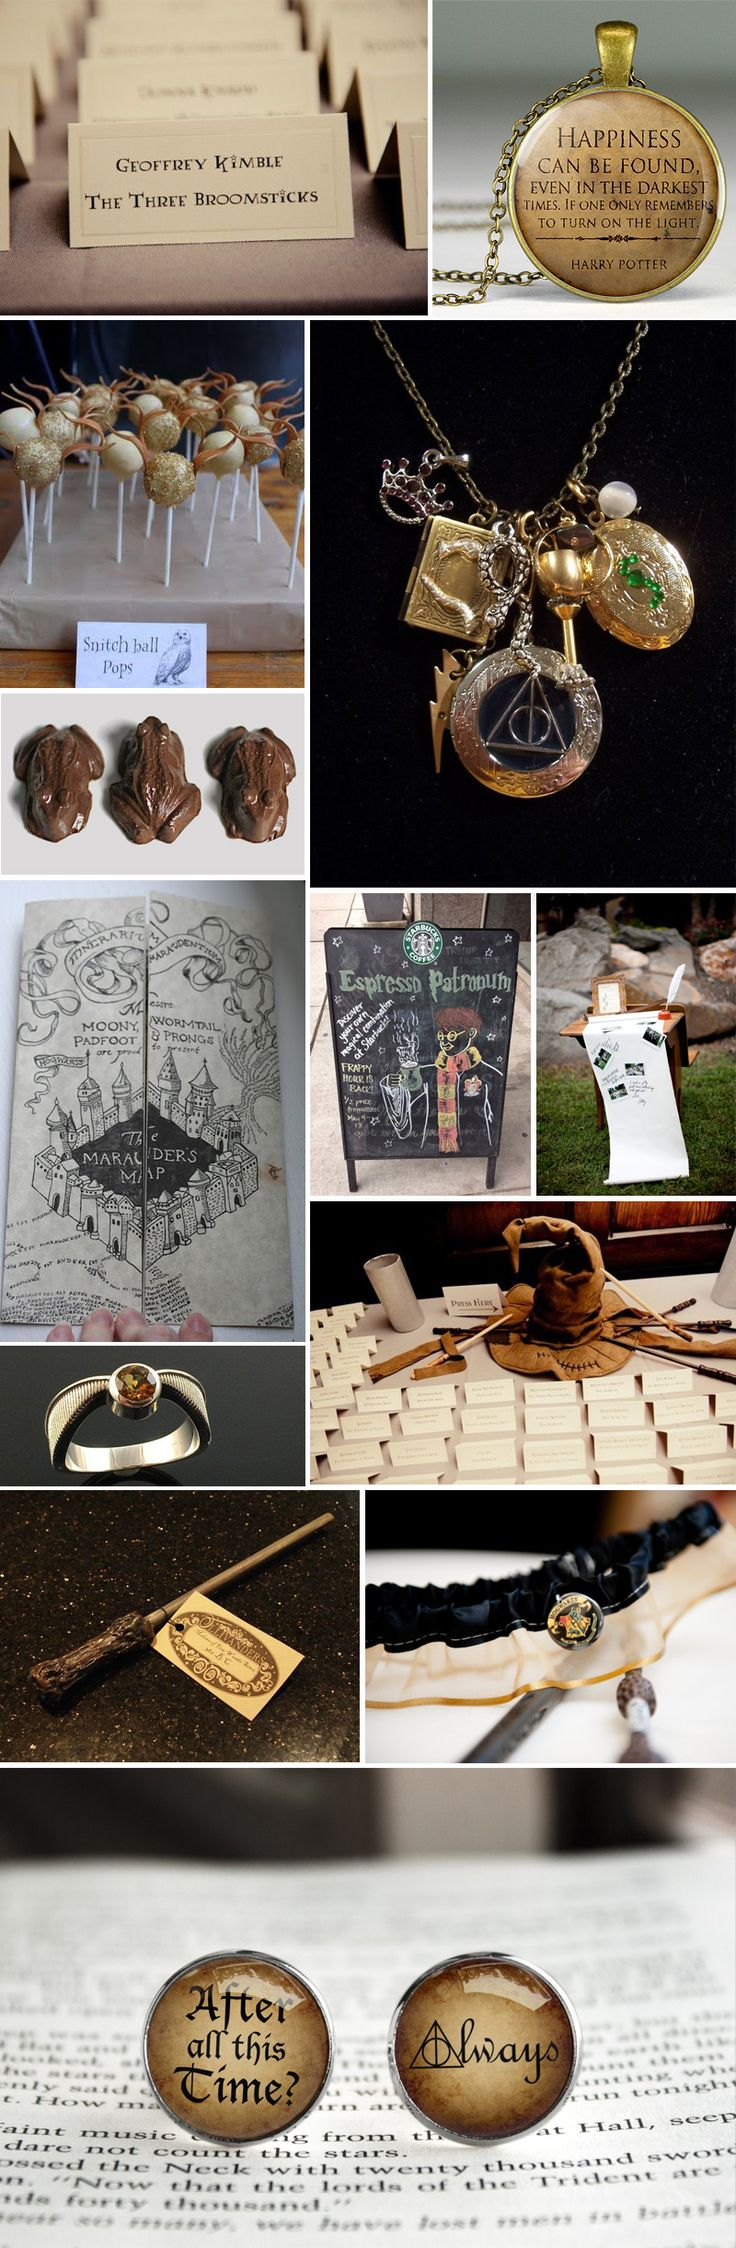 Harry Potter! The most amazing wedding idea! I must have those cufflinks!